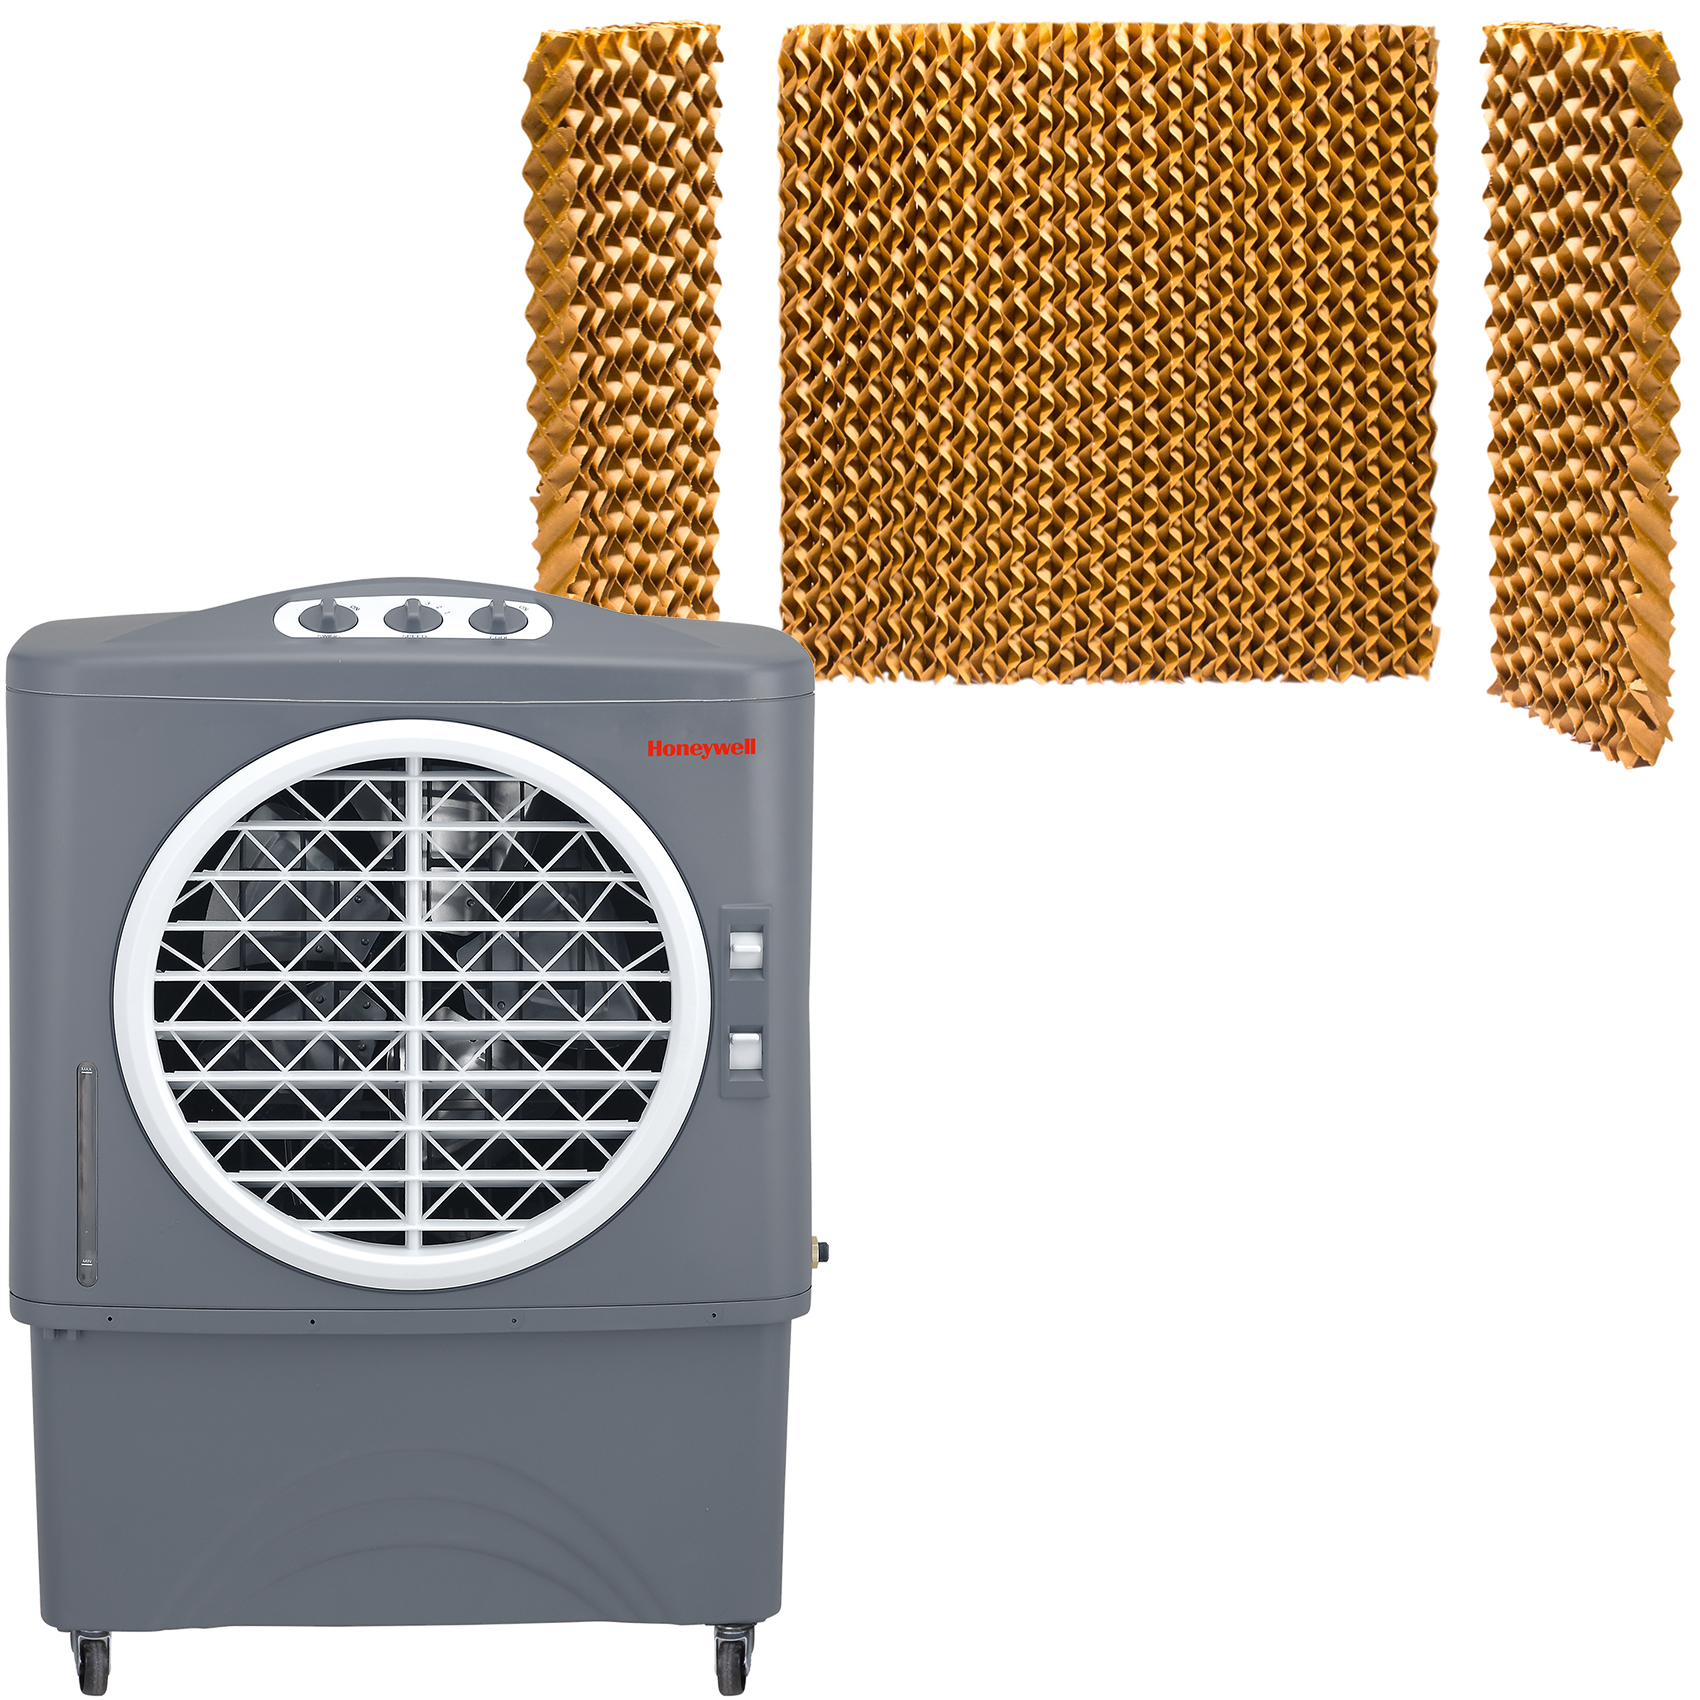 Honeywell 1062 CFM Indoor/Outdoor Evaporative Air Cooler (Swamp Cooler) with Mechanical Controls in Gray with Bonus Replacement Filters